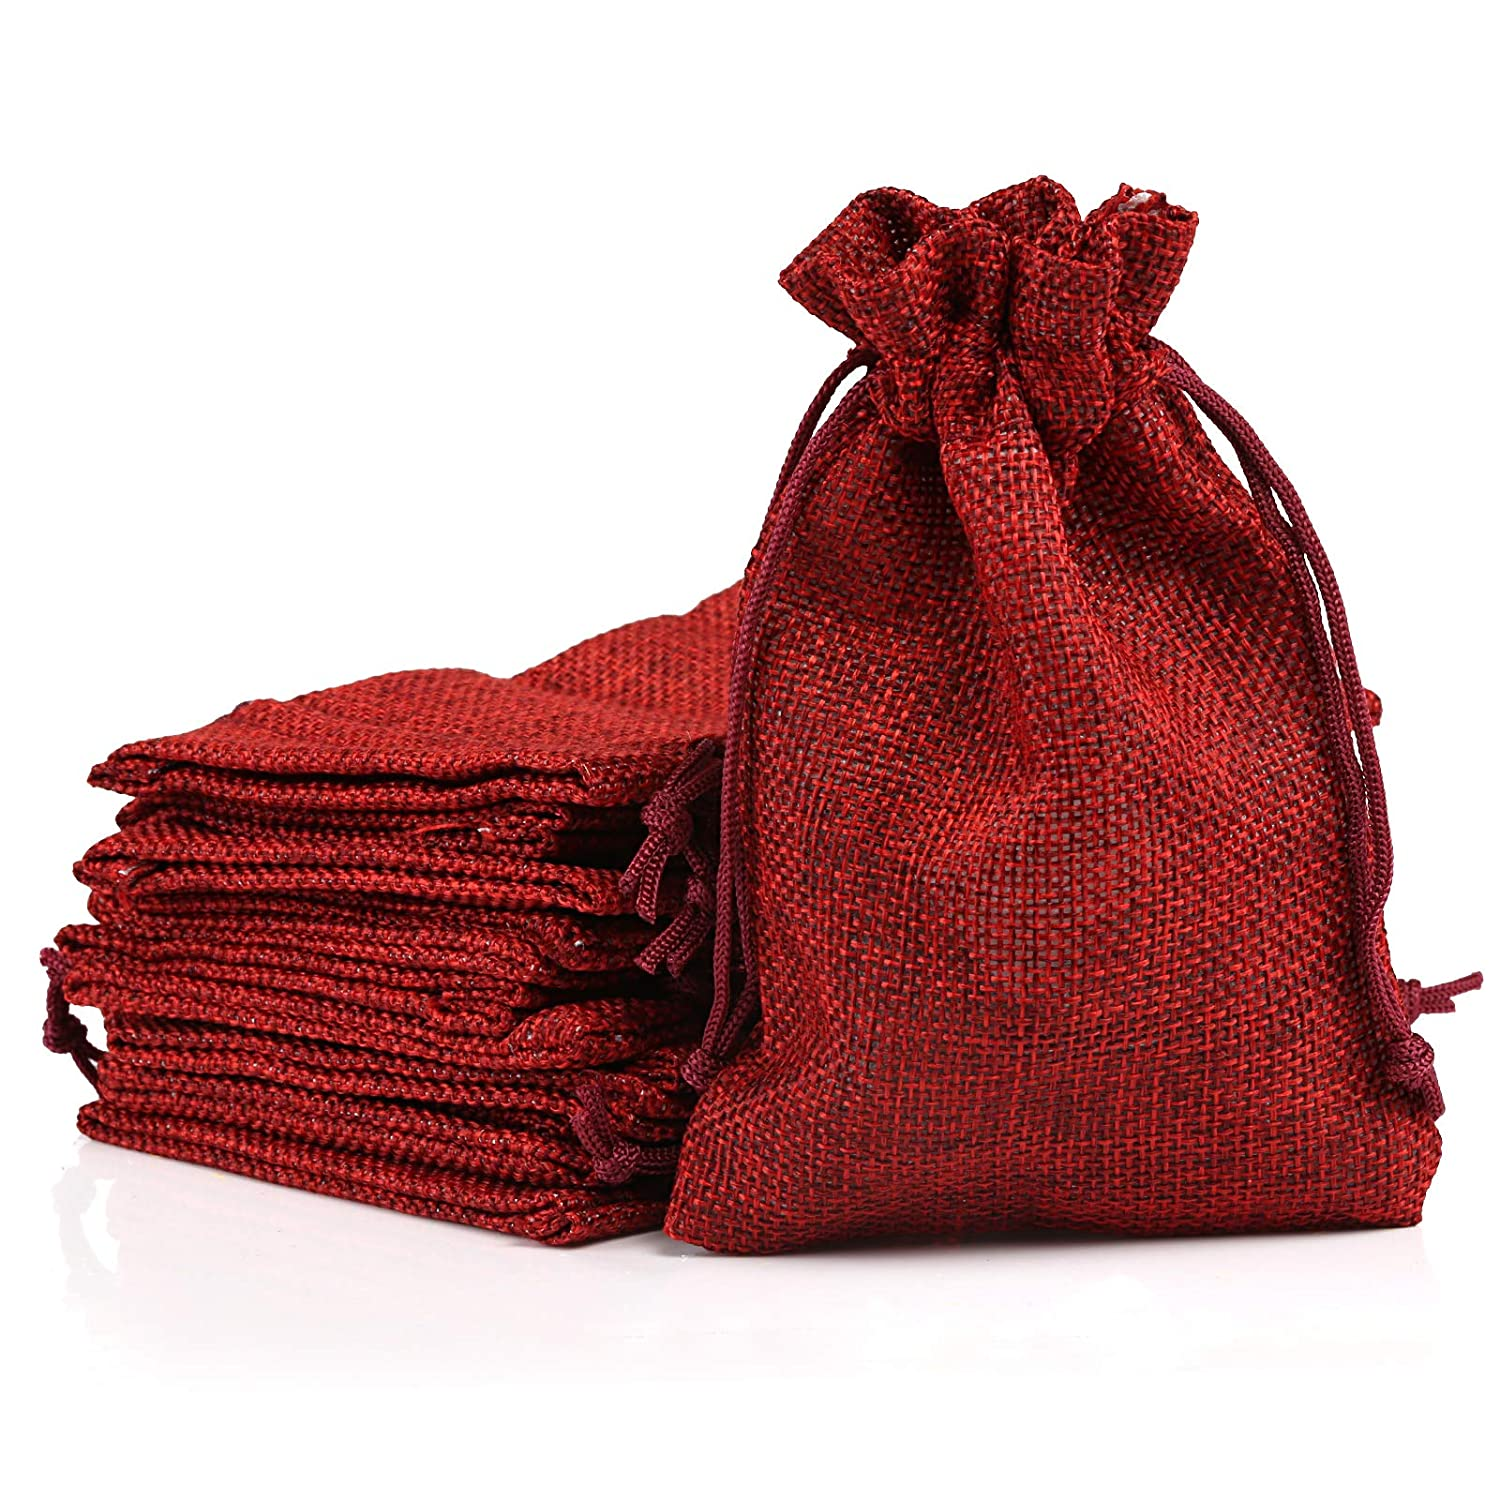 Naler 12pcs Burlap Canvas Pouches Bags, Sack Drawstring Pouches Gift Bags for Wedding Favor, Jewelry, Vintage Party Storage Wrap, 10 * 15cm